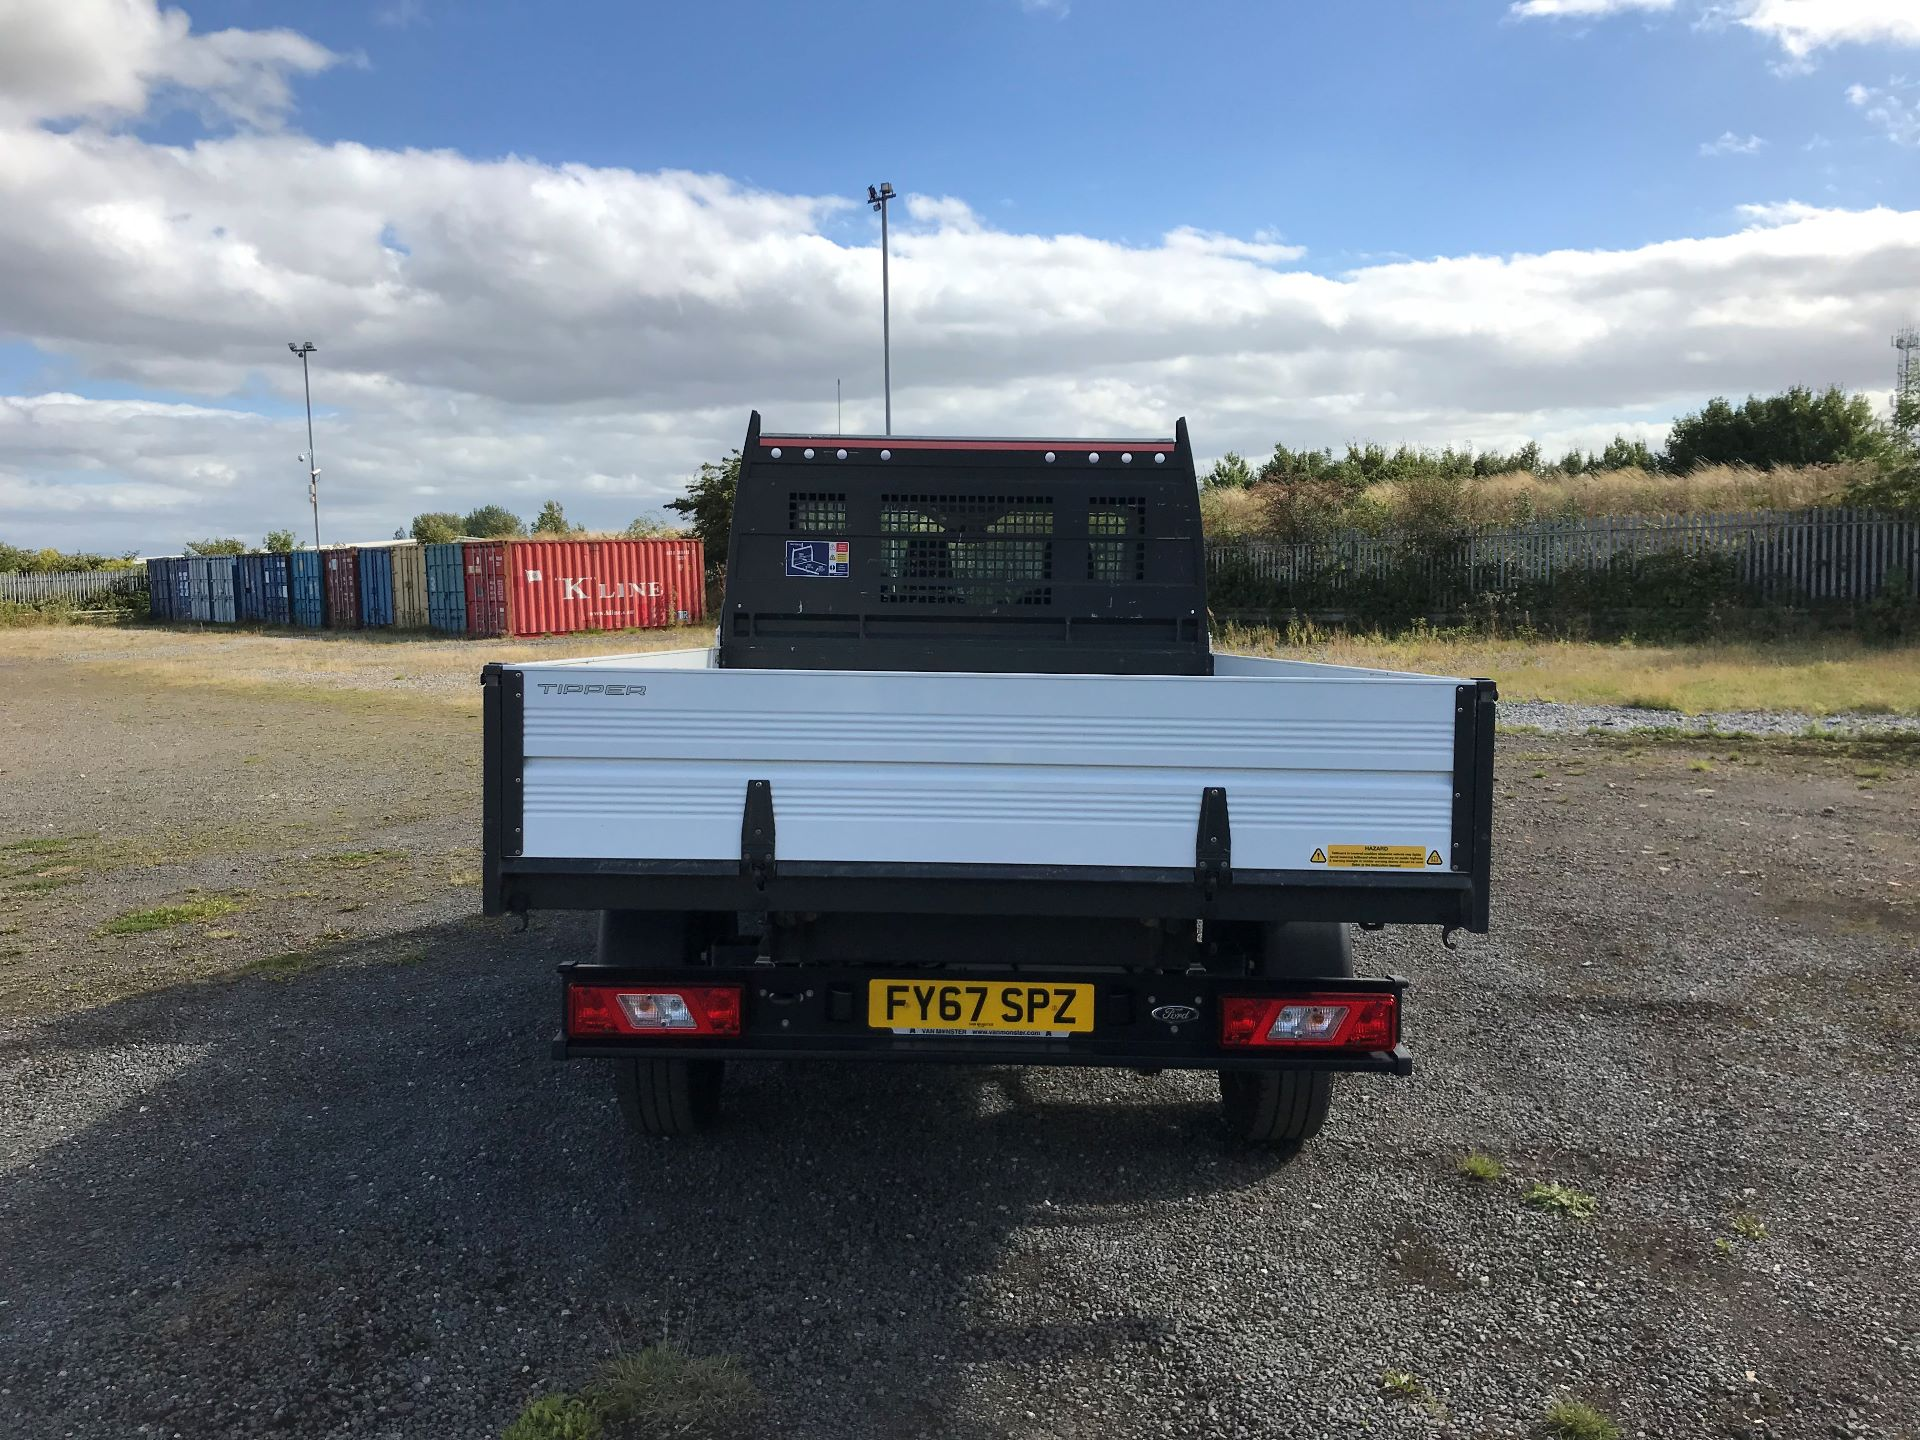 2018 Ford Transit 2.0 Tdci 130Ps Tipper (FY67SPZ) Thumbnail 6